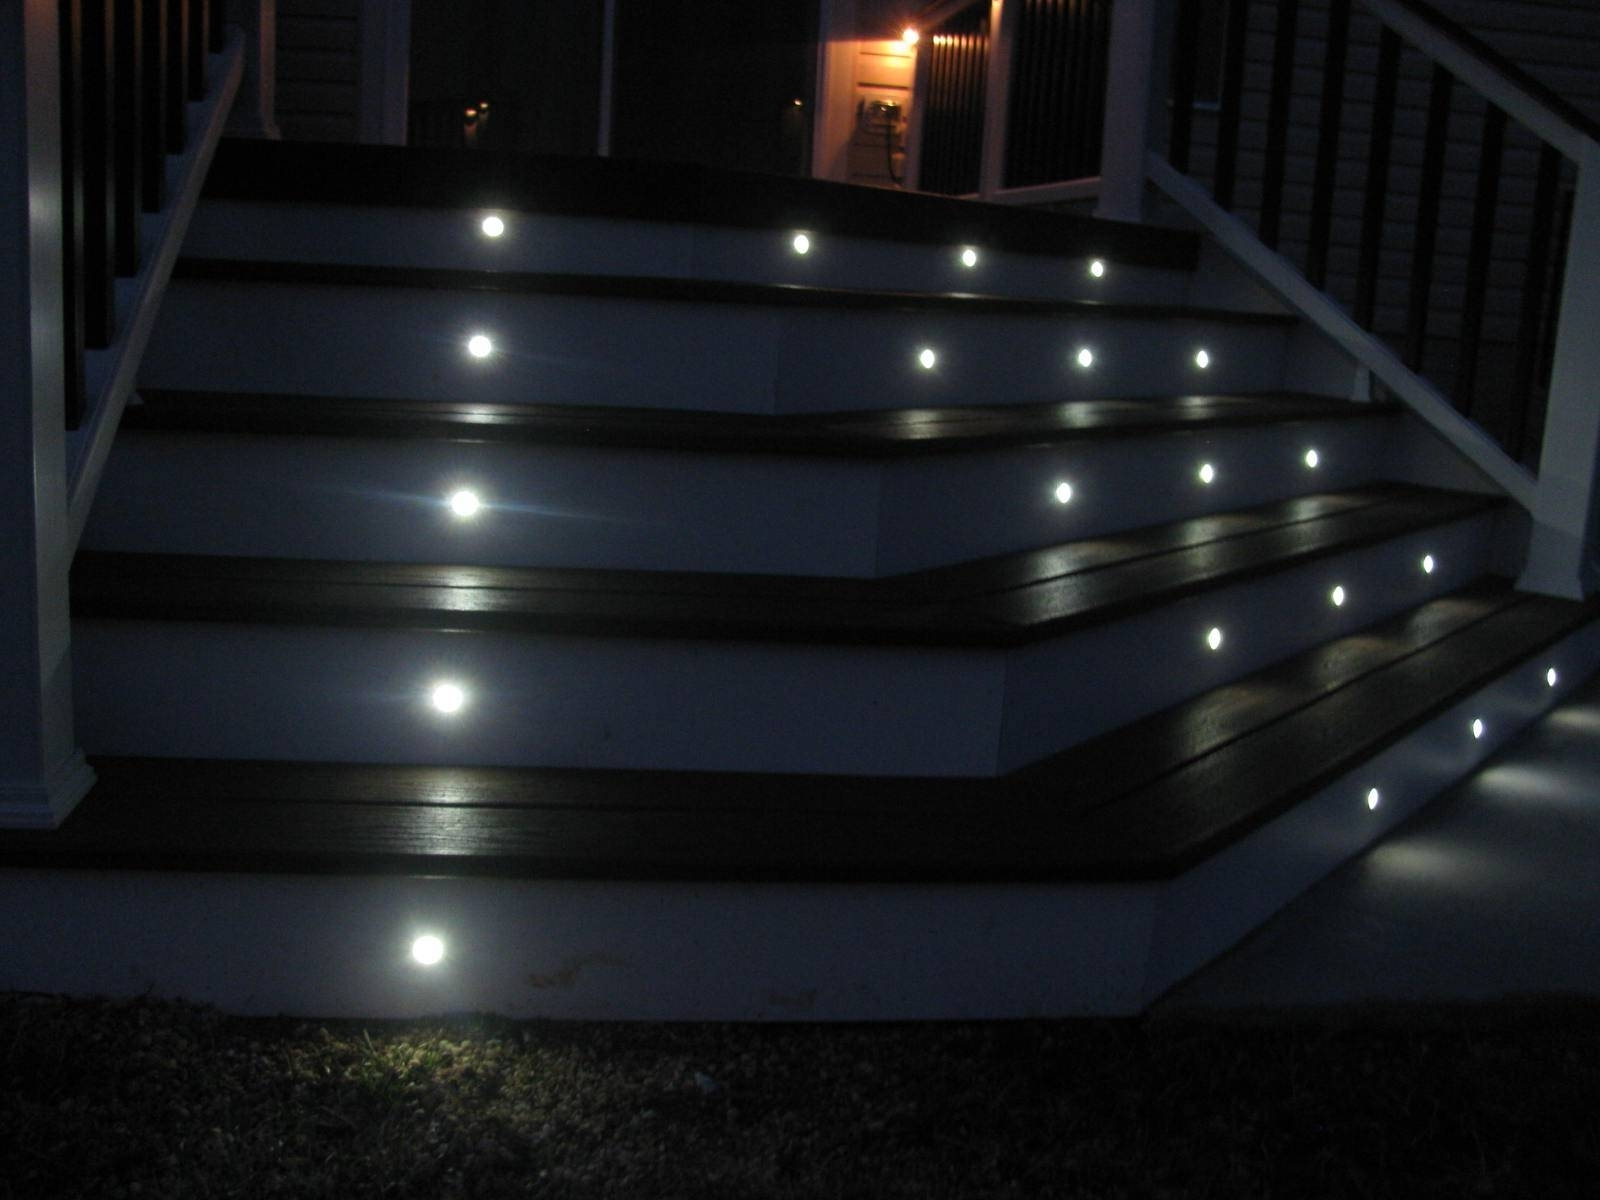 Led Light Strips At Home Depot Gallery Of Low Voltage Deck Lighting At Home Depot View 13